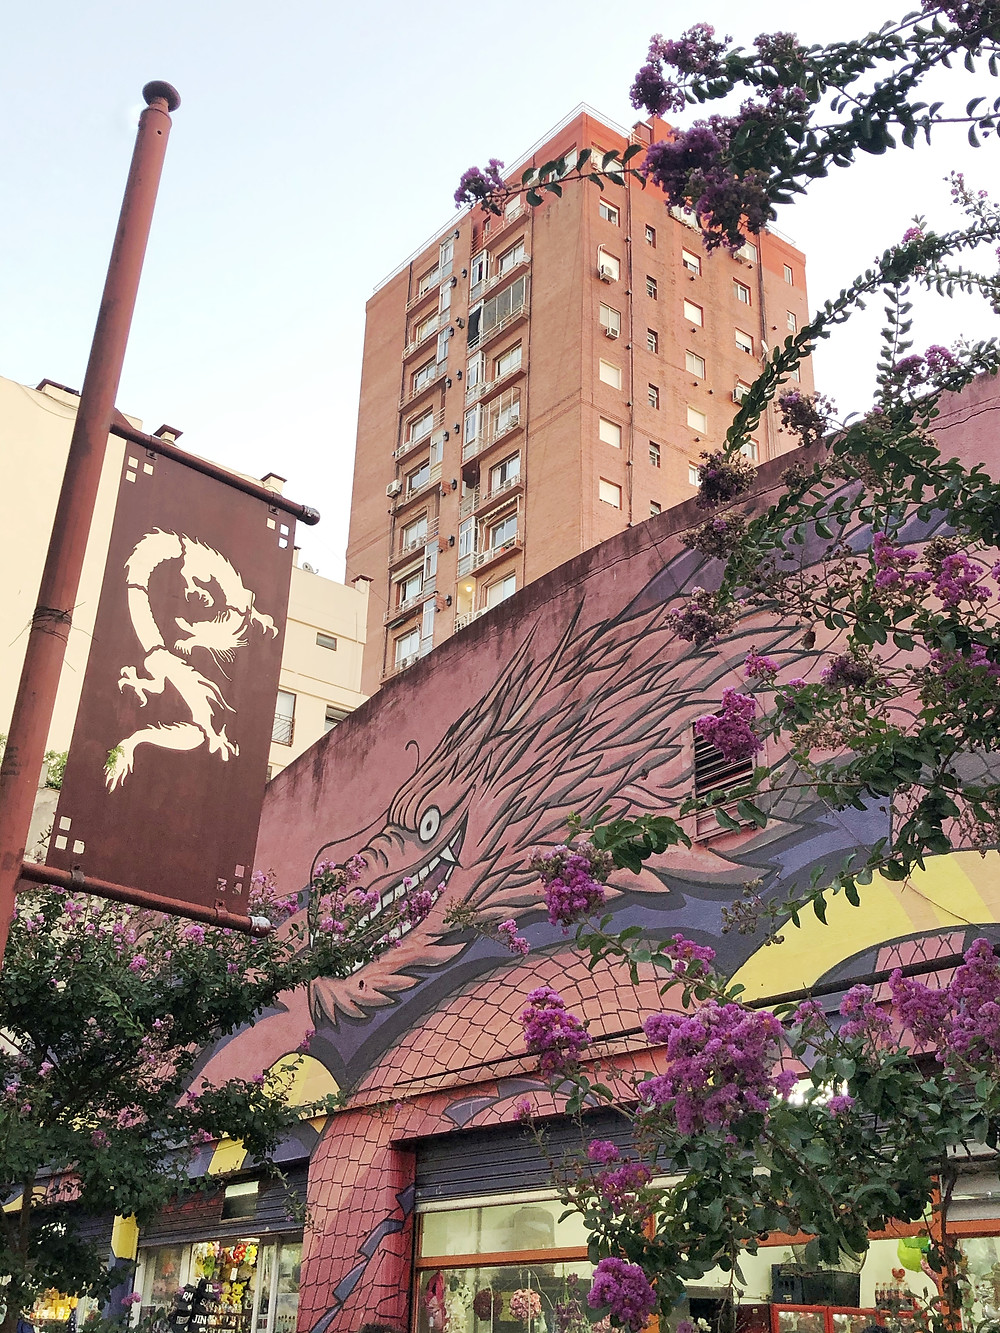 Chinatown Buenos Aires